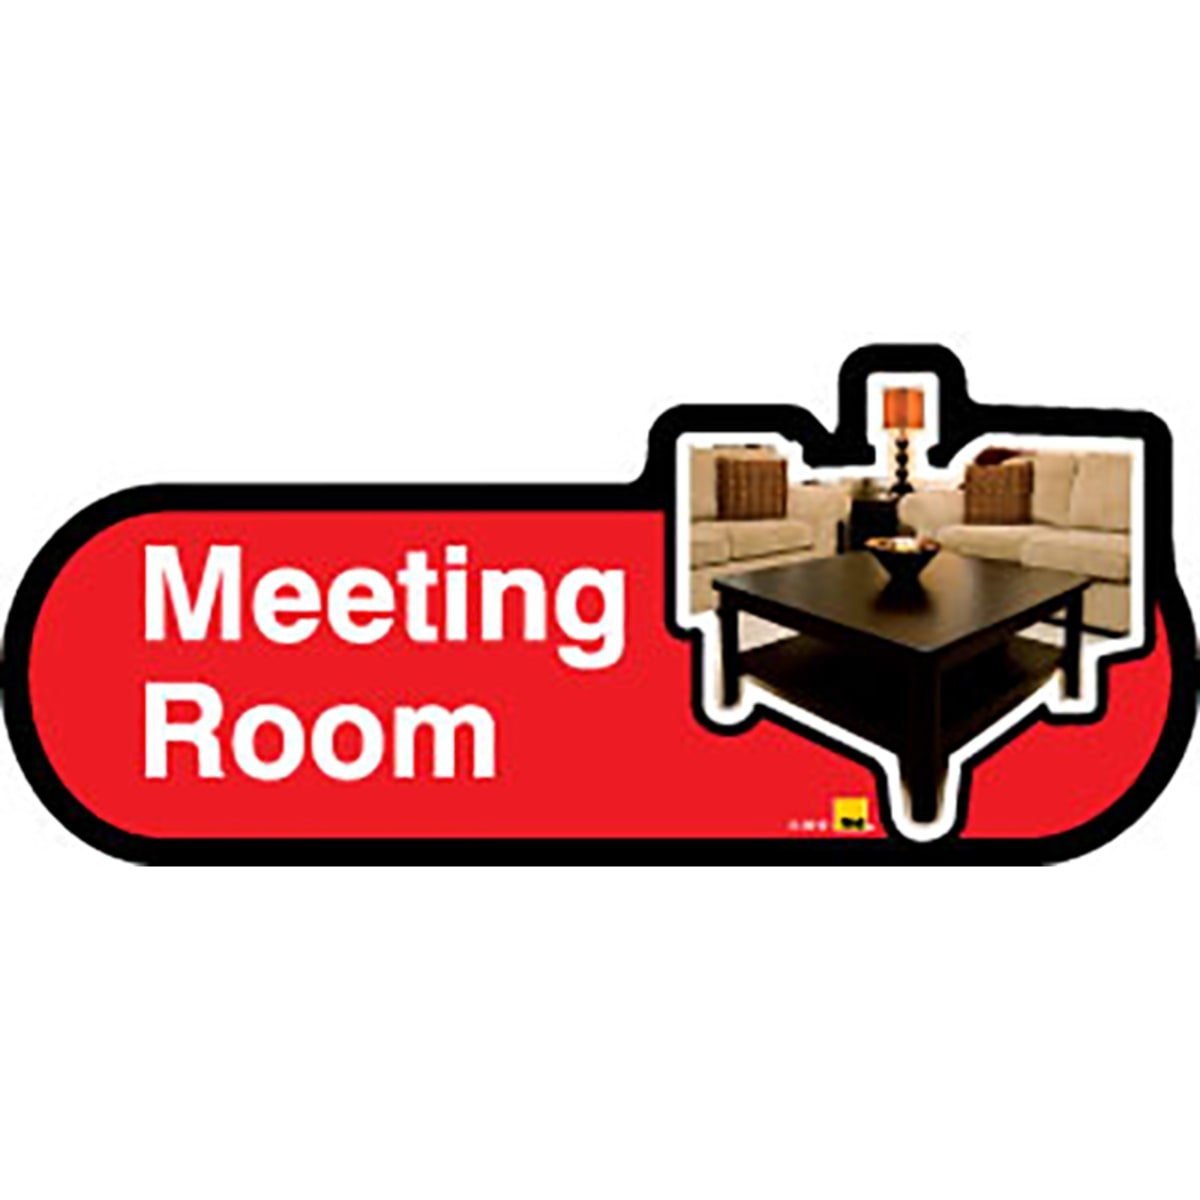 Dementia Friendly Meeting Room - Red Sign -400mm Wide with Screw Fix by Dementia Friendly